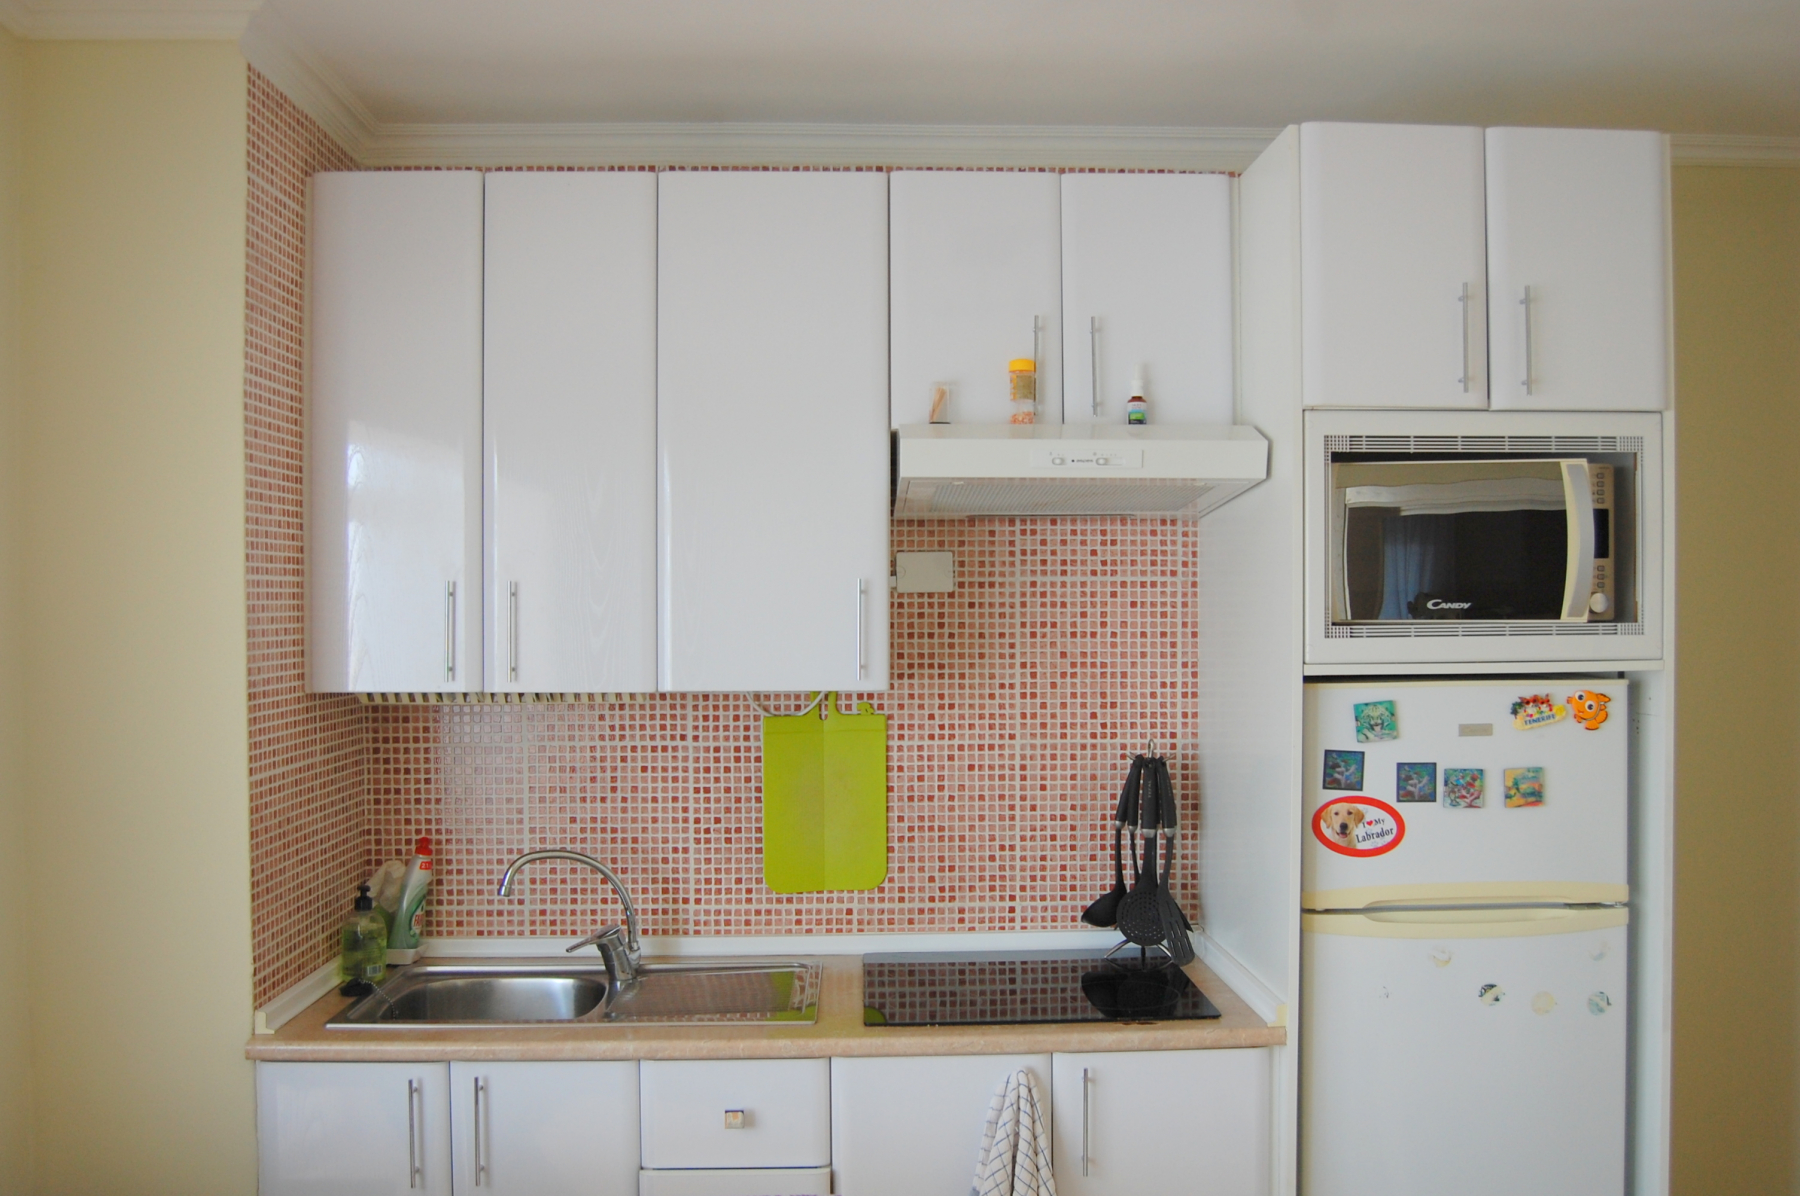 Properties for Sale in Tenerife, Canary Islands, Spain | SylkWayStar Real Estate. 1 Bedroom apartment Las Americas. Image-25195